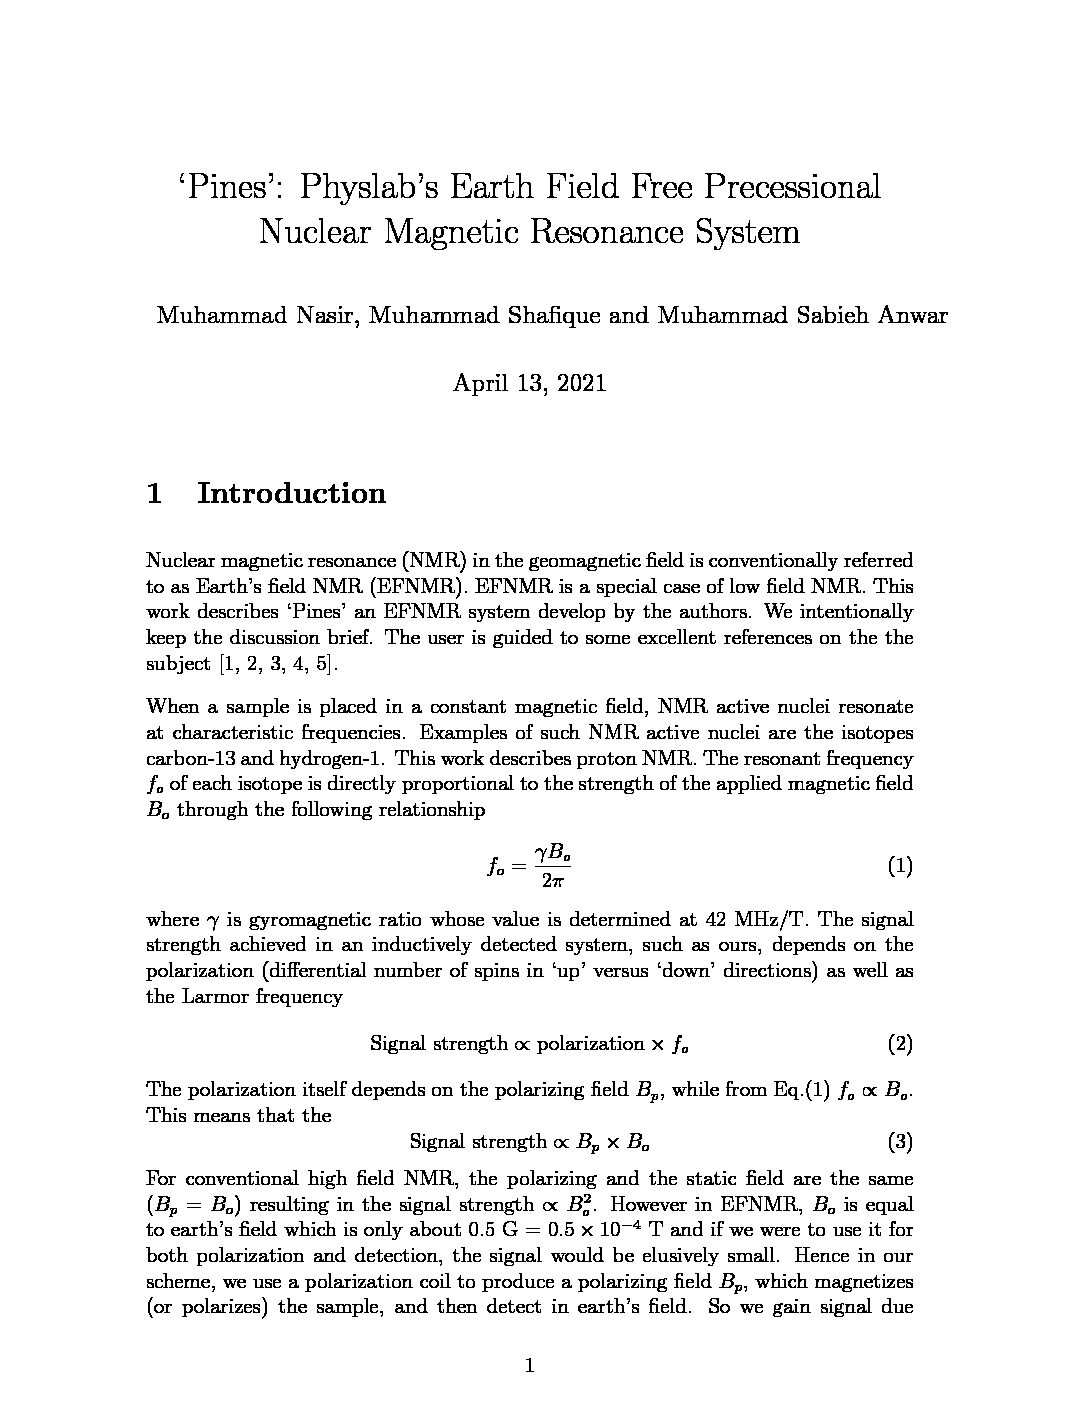 'Pines': Physlab's Earth Field Free Precessional Nuclear Magnetic Resonance System